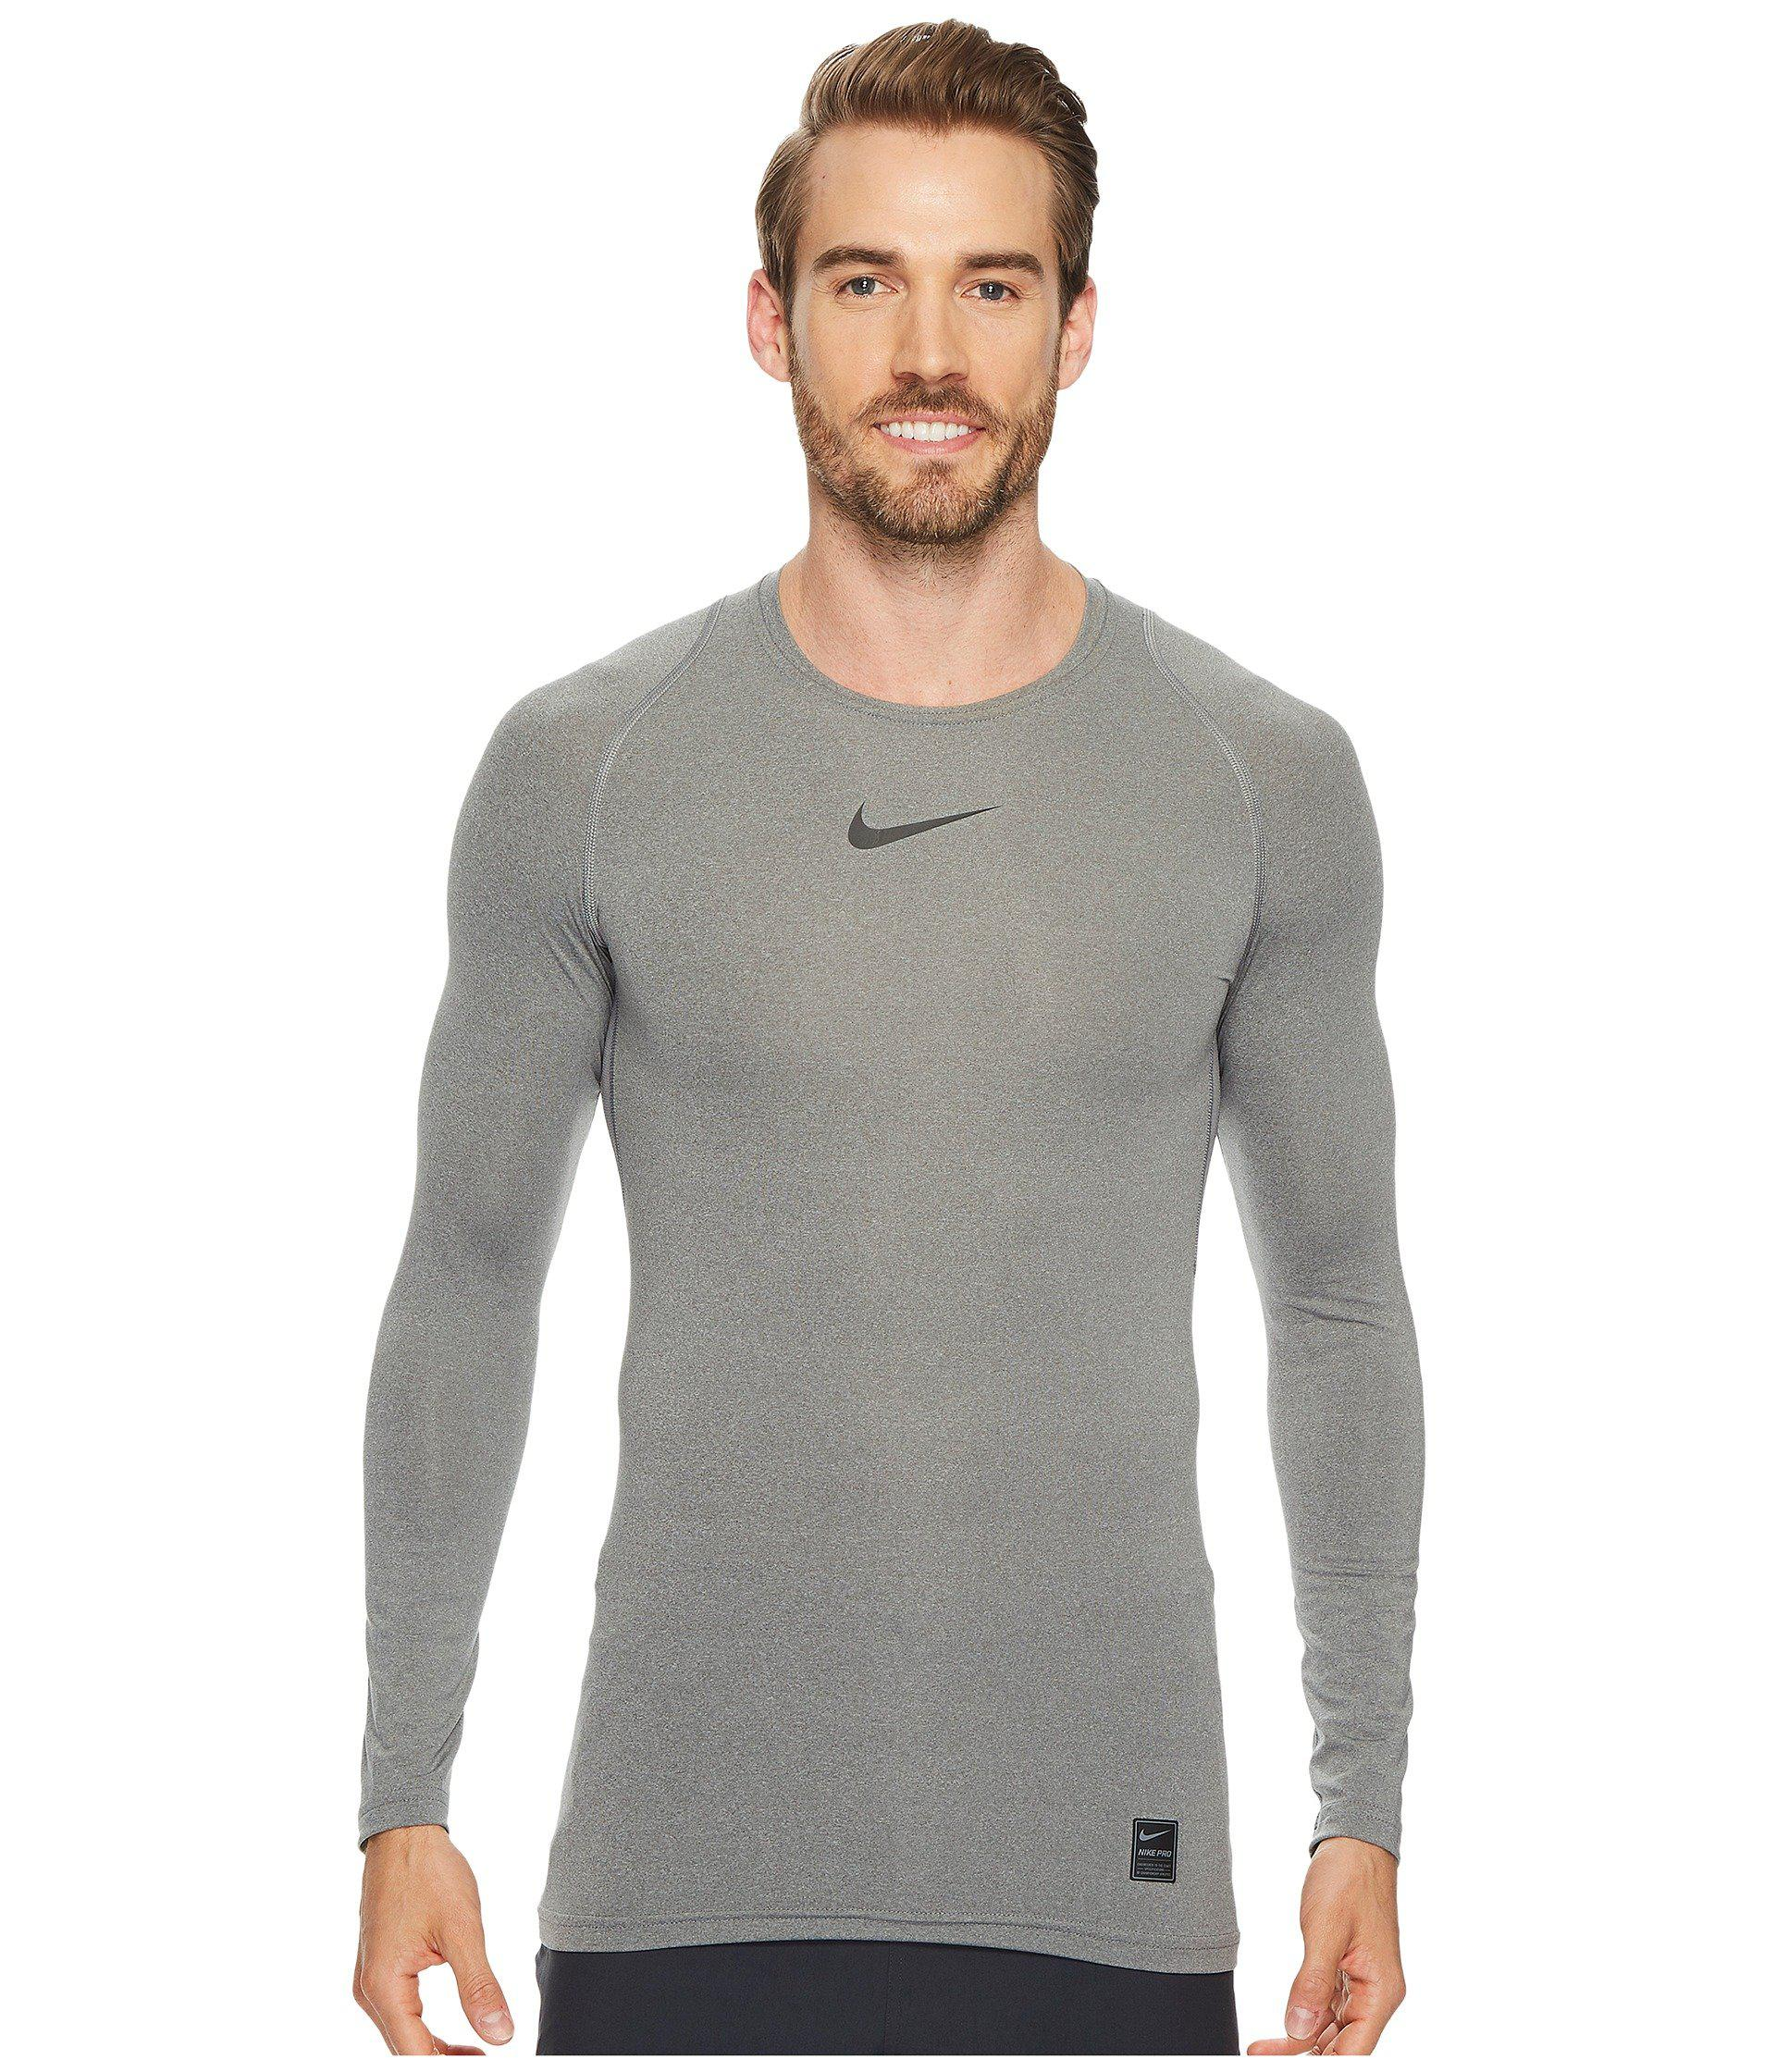 daced012b320 Lyst - Nike Pro Compression Long Sleeve Training Top in Gray for Men ...